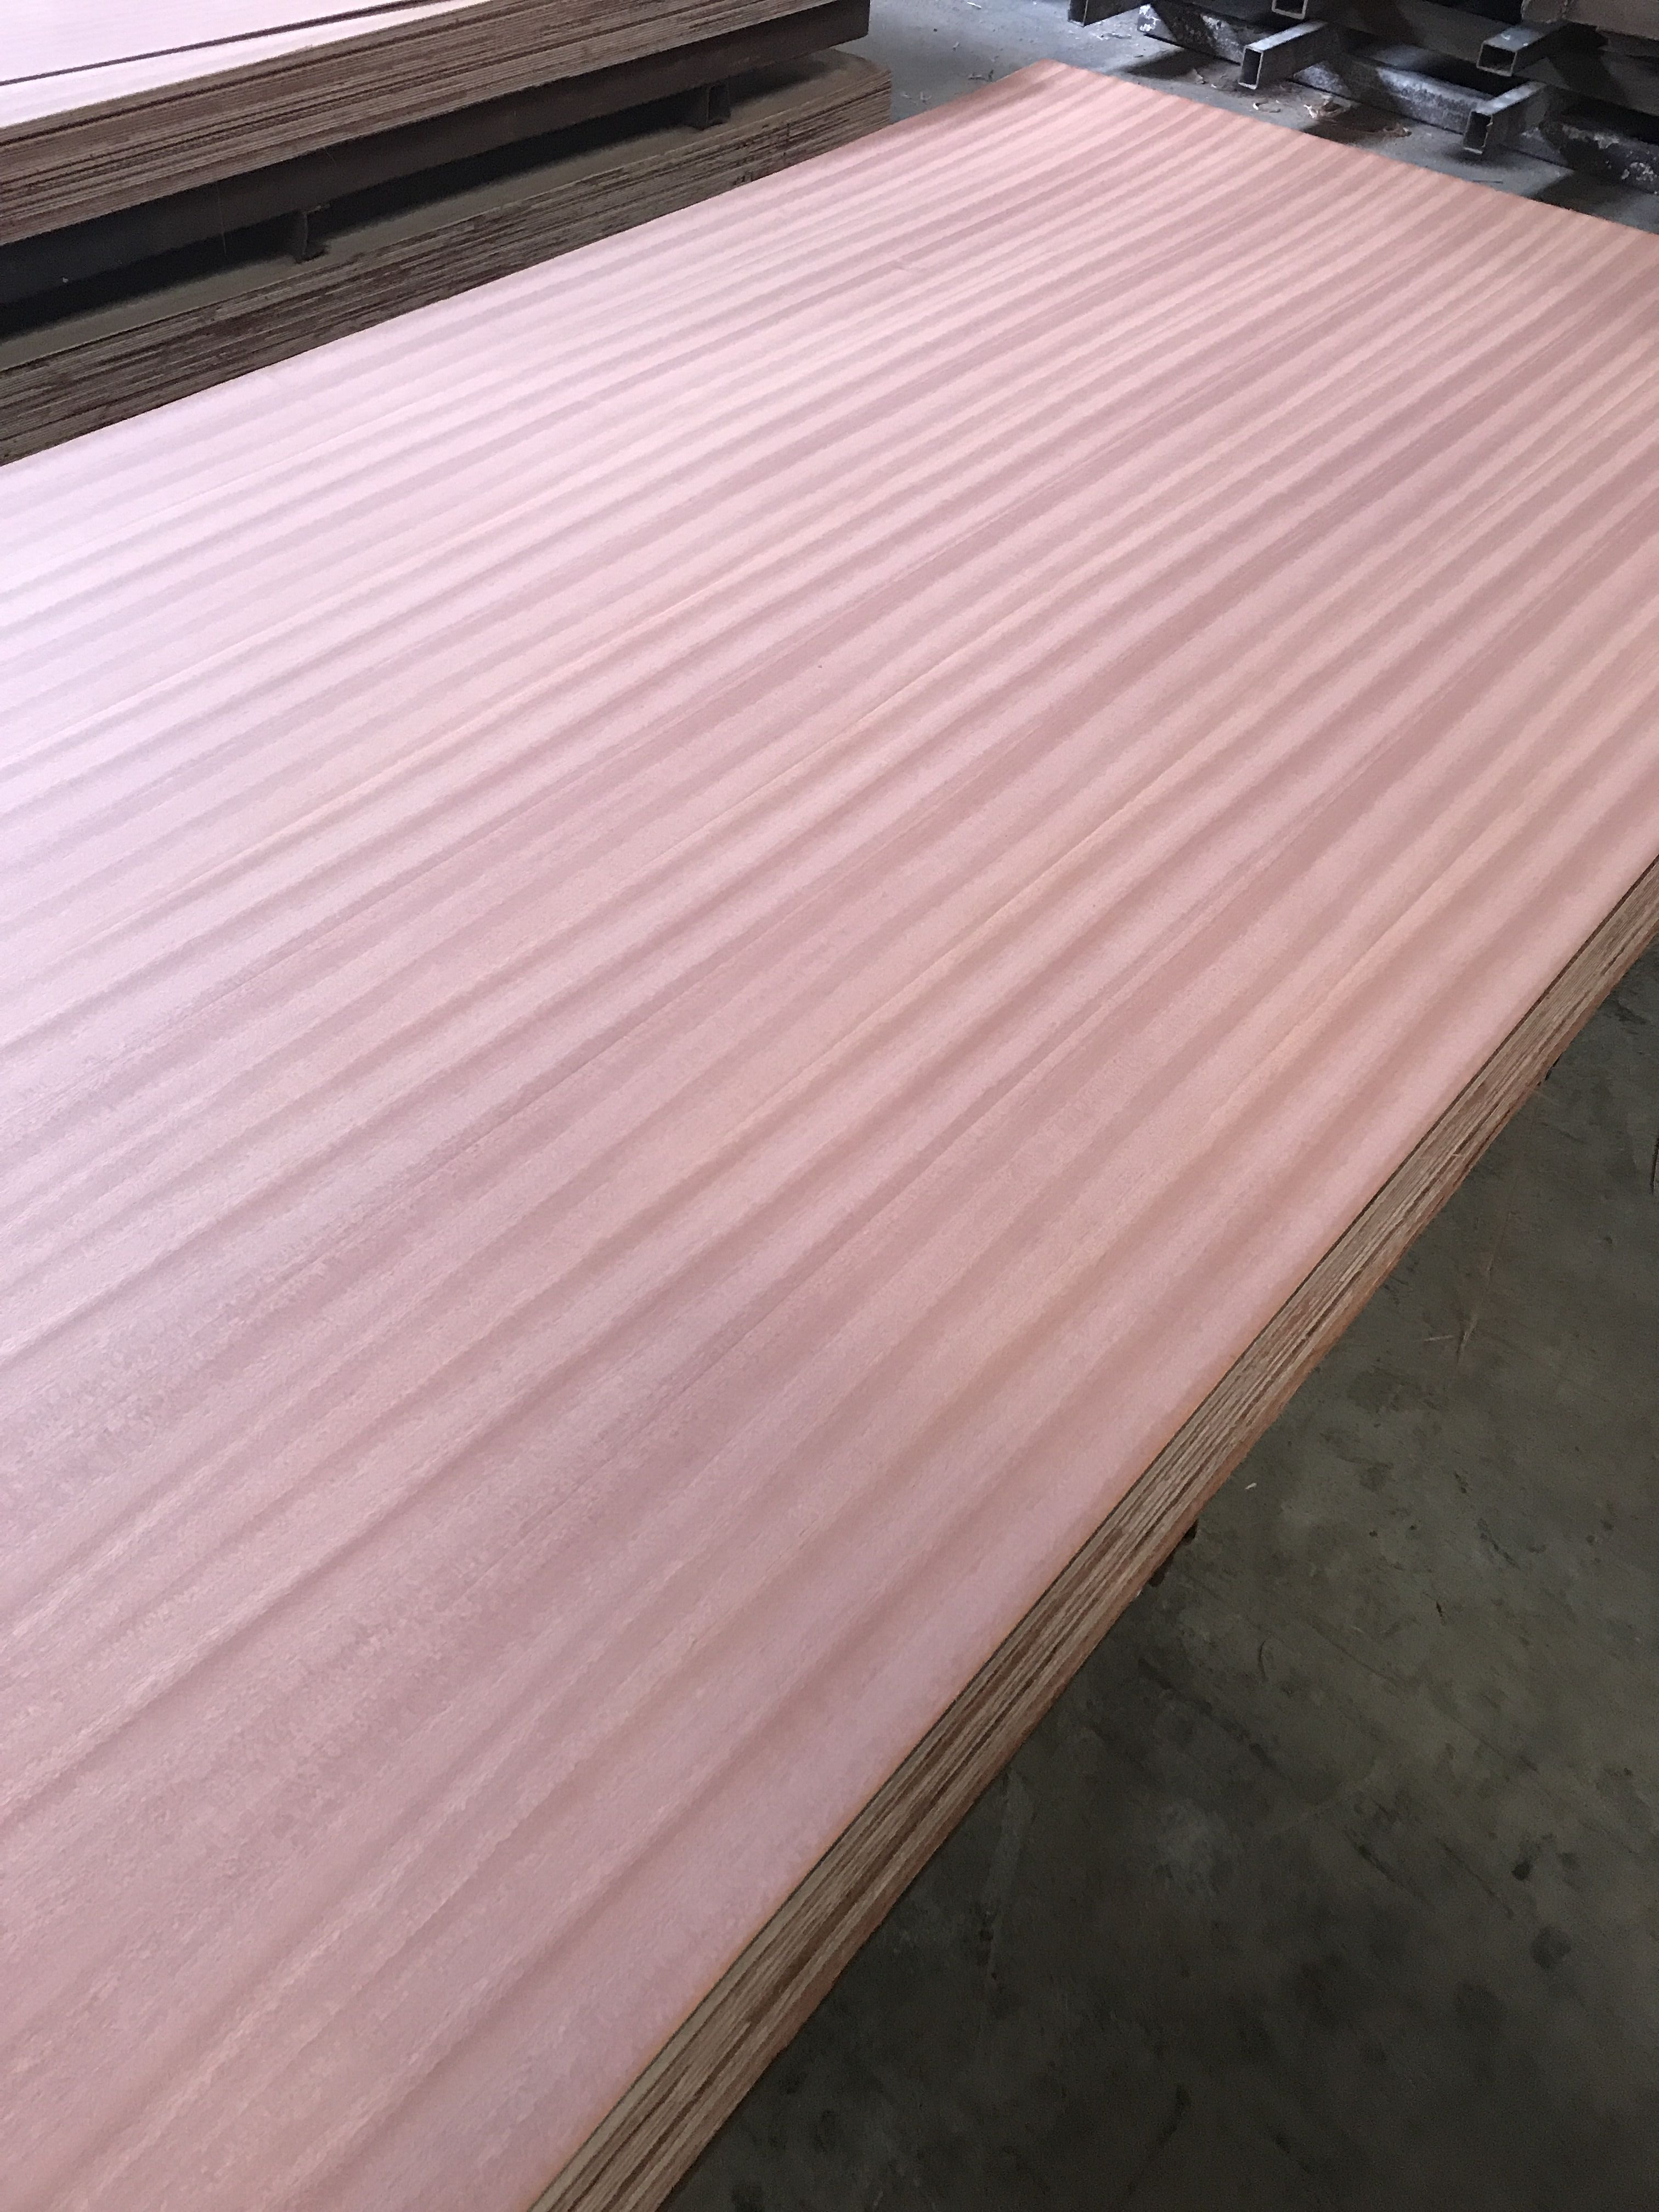 Natural sapeli veneered MDF plywood Q/C grain